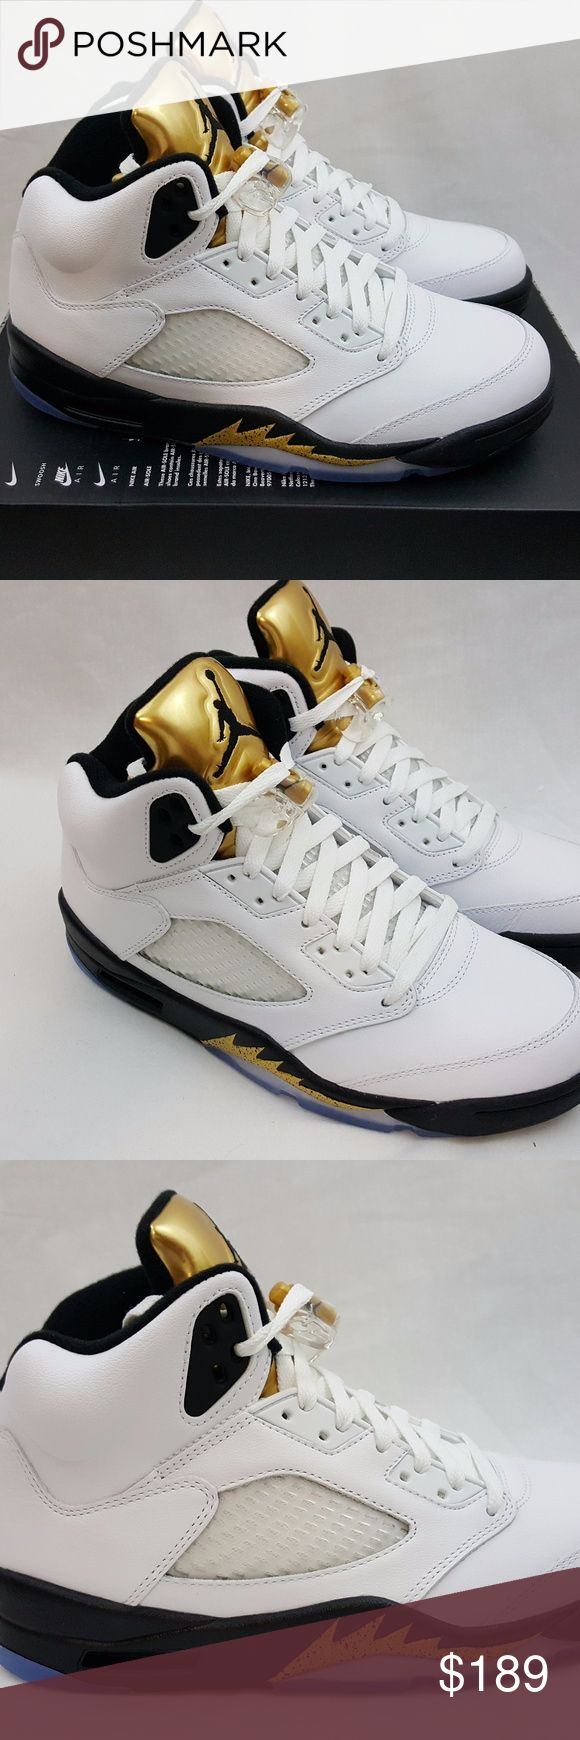 Nike Air Jordan 5 V Retro Olympic Gold Medal 2016 Nike Air Jordan 5 V Retro Olympic Gold Medal Sneakers 136027-133 Size 7.5 Brand: Nike Name: Air Jordan 5 V Retro Olympic Gold Medal  Colorway: White Black Gold Style Code: 136027-133 Year of Release: 2016 Size: 7.5 Condition: Brand new with box. Box top is missing the lid. Included Accessories: NA Additional Information: 100% authentic merchandise or your payment will be refunded in full. Air Jordan Shoes Athletic Shoes